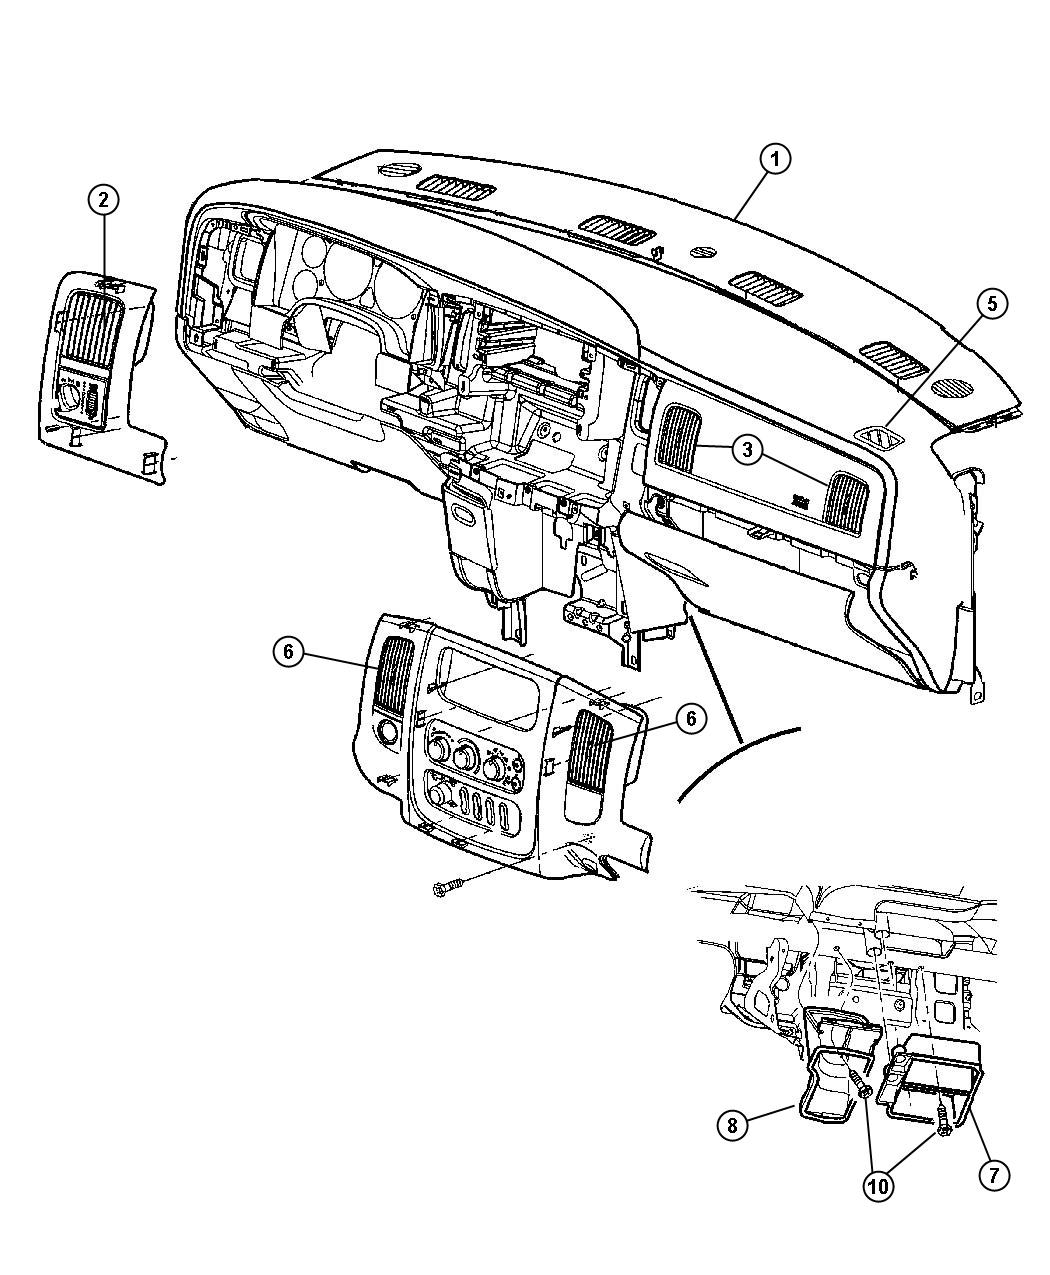 2005 Dodge Ram 2500 Adapter. Defroster duct. Air, ducts